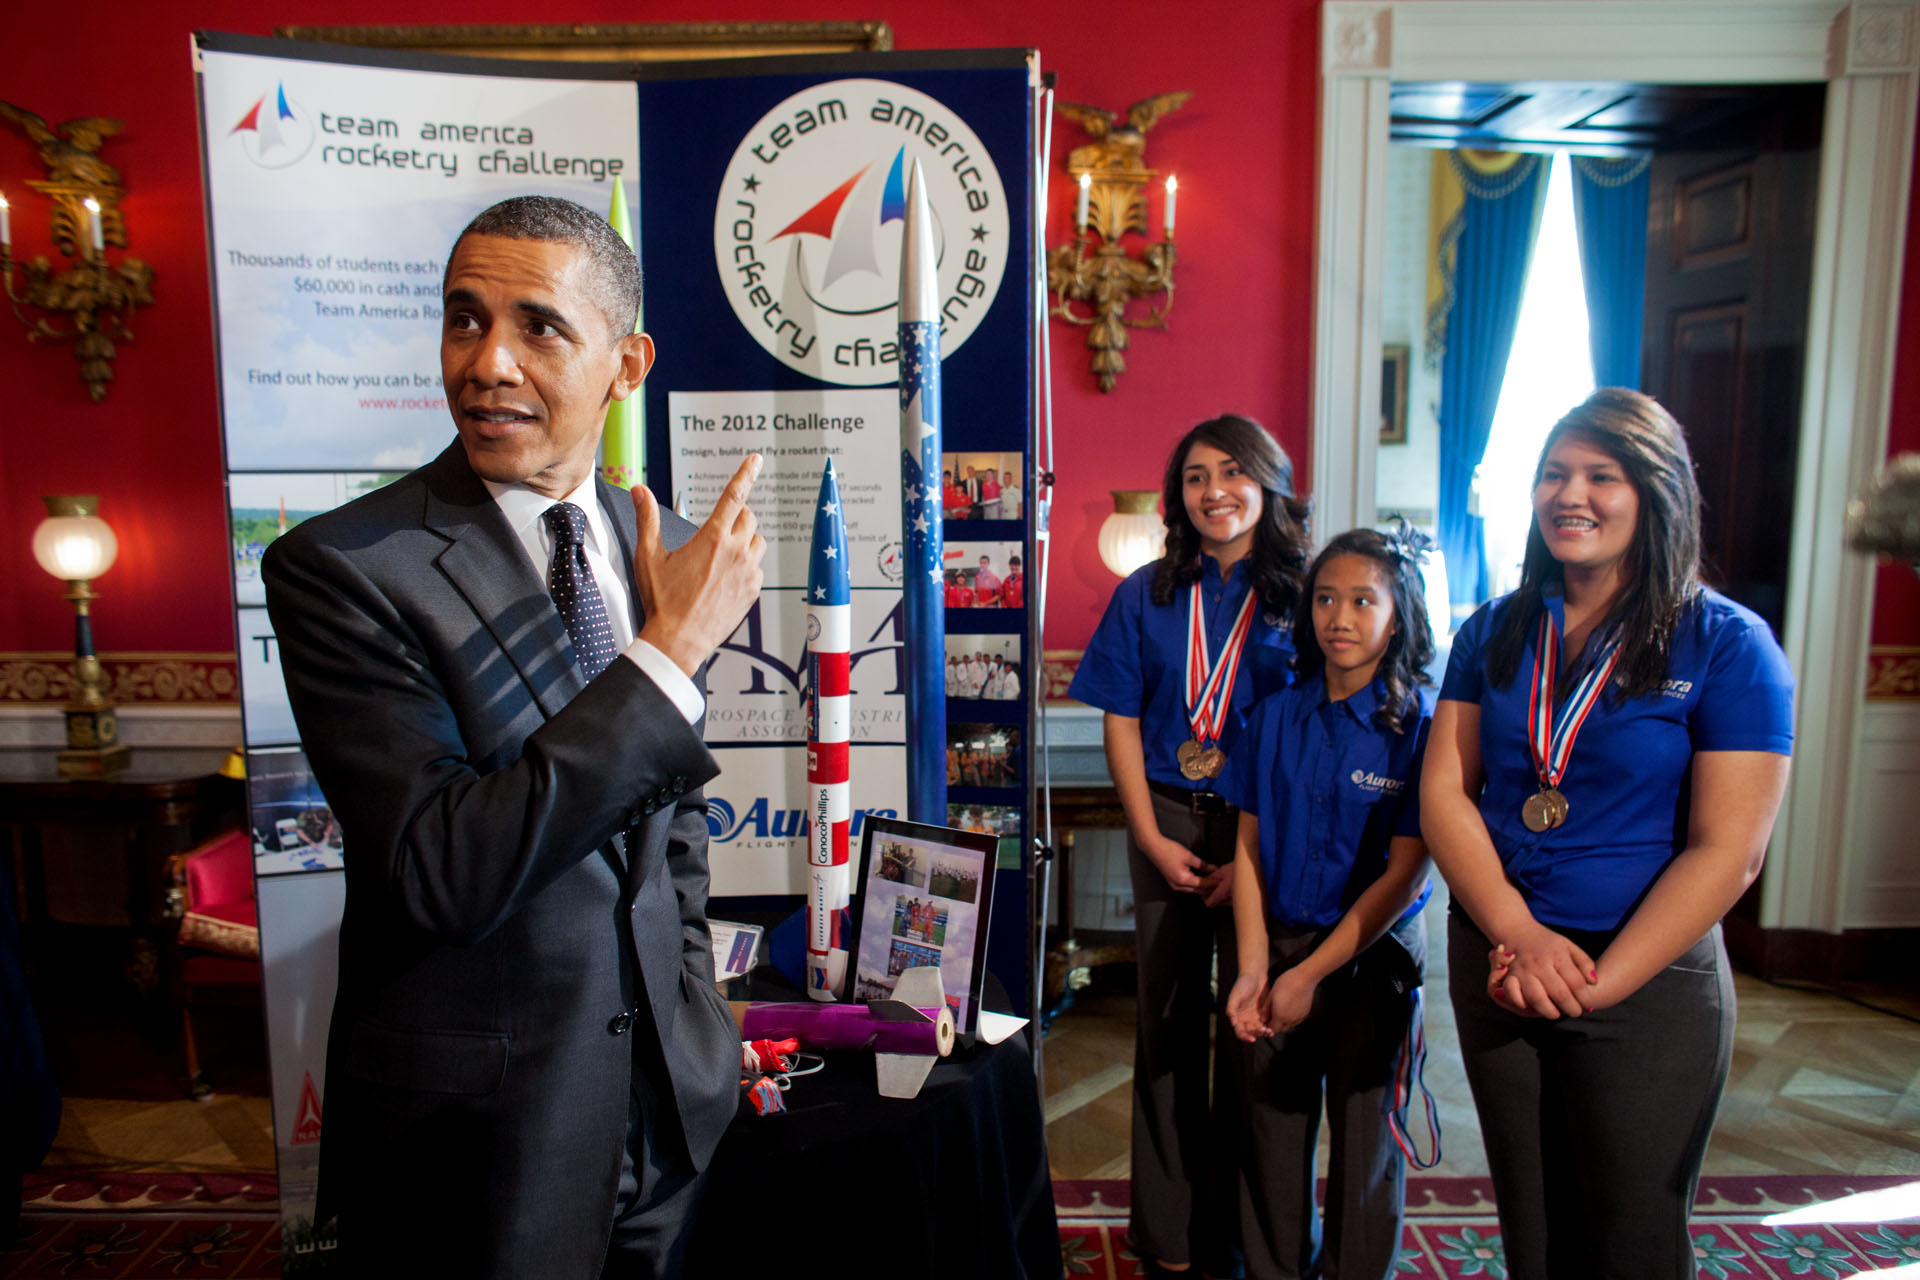 President Obama meets with rocketry team from Presidio, Texas